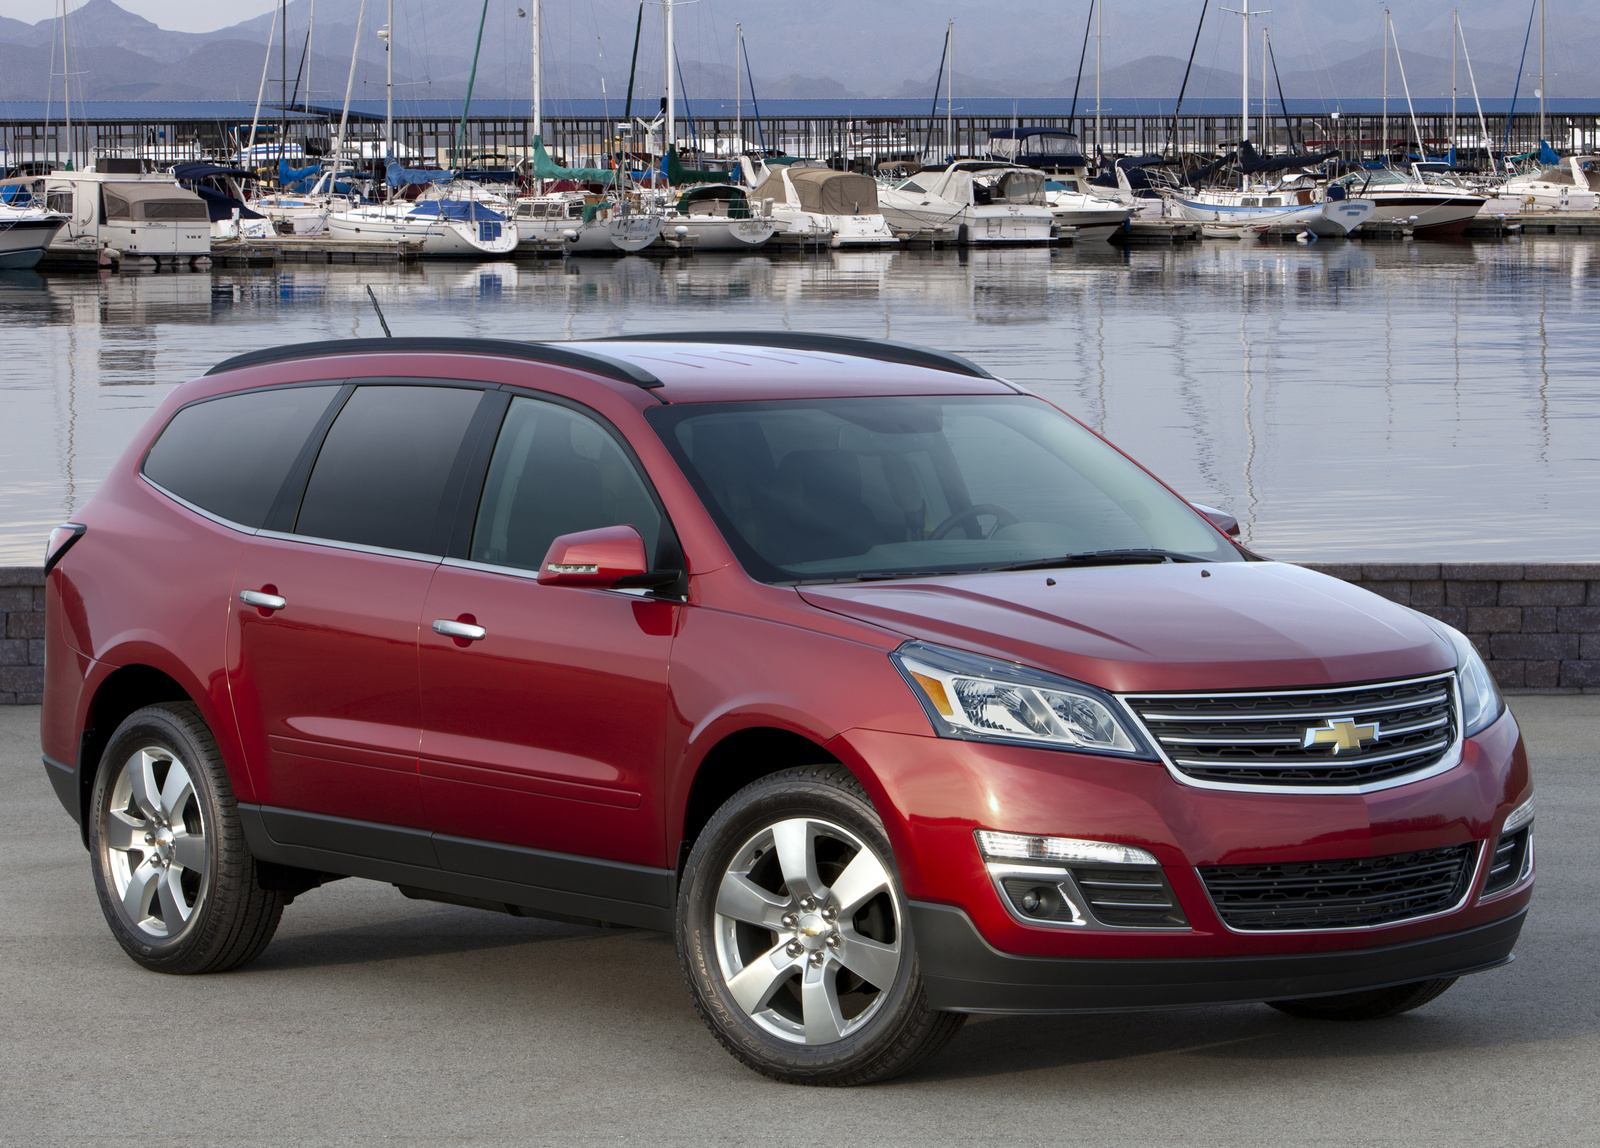 2014 chevrolet traverse information and photos zombiedrive. Cars Review. Best American Auto & Cars Review